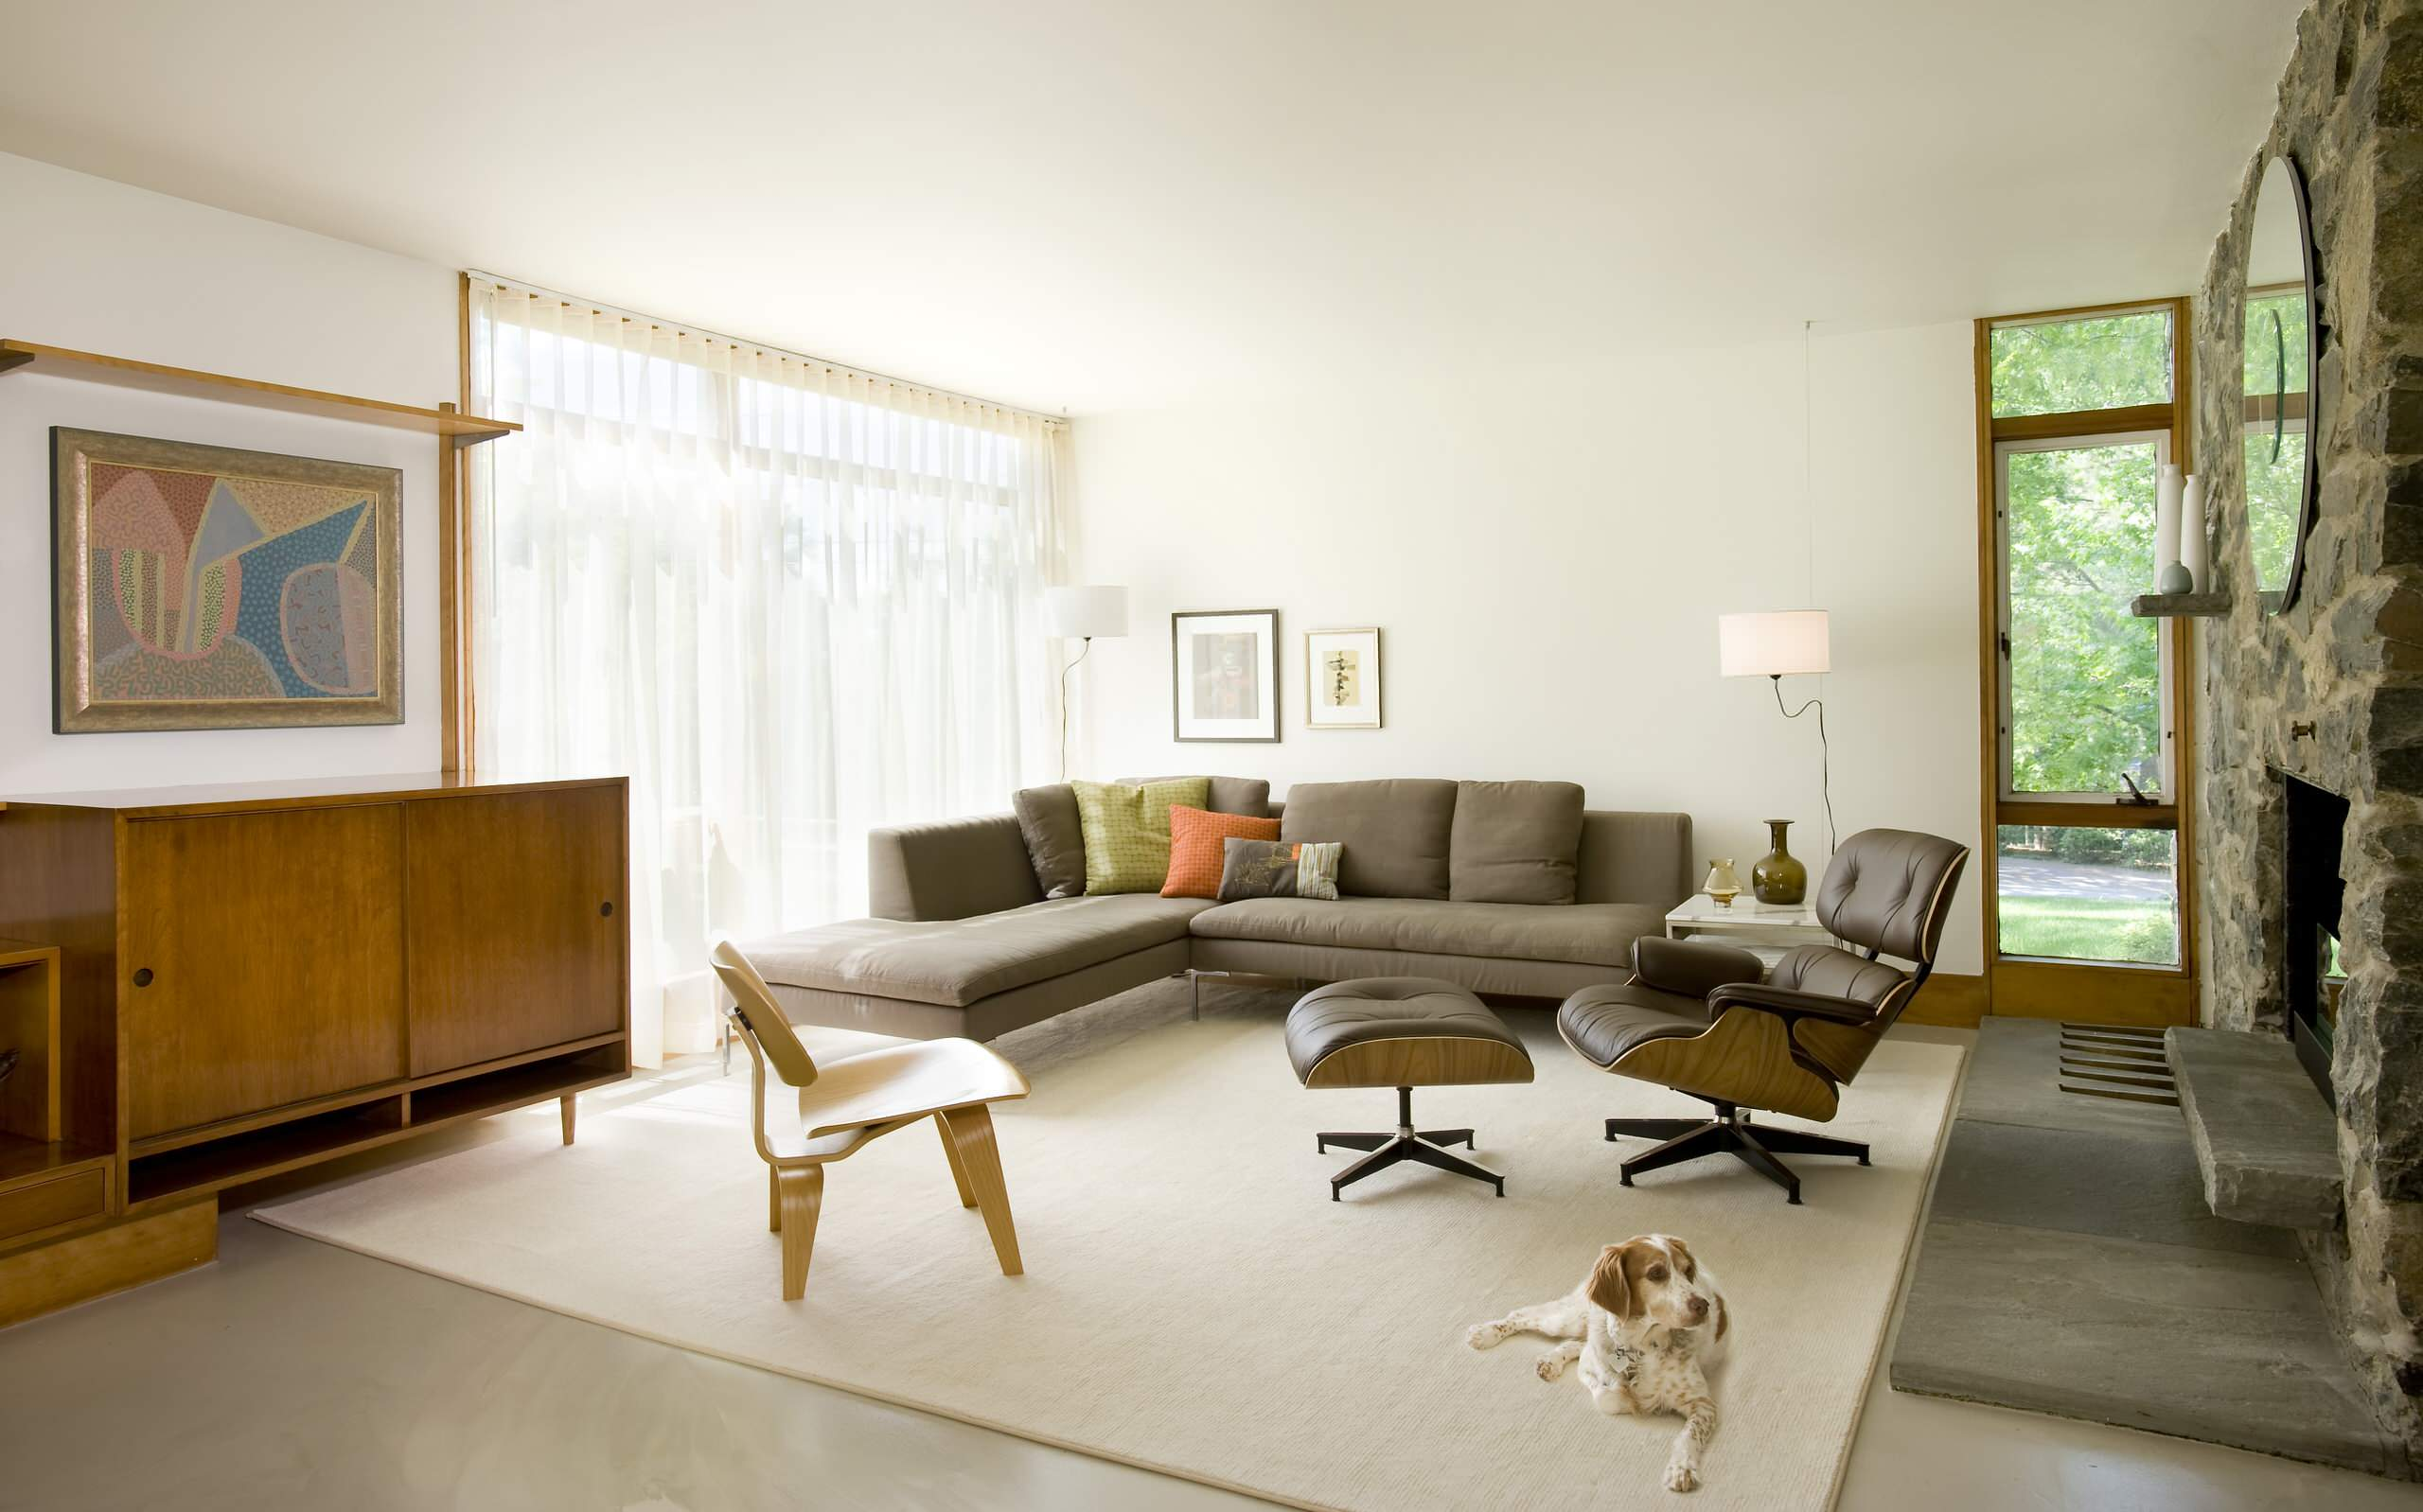 Eames Lounge Chair Living Room eames lounge chair ideas | houzz